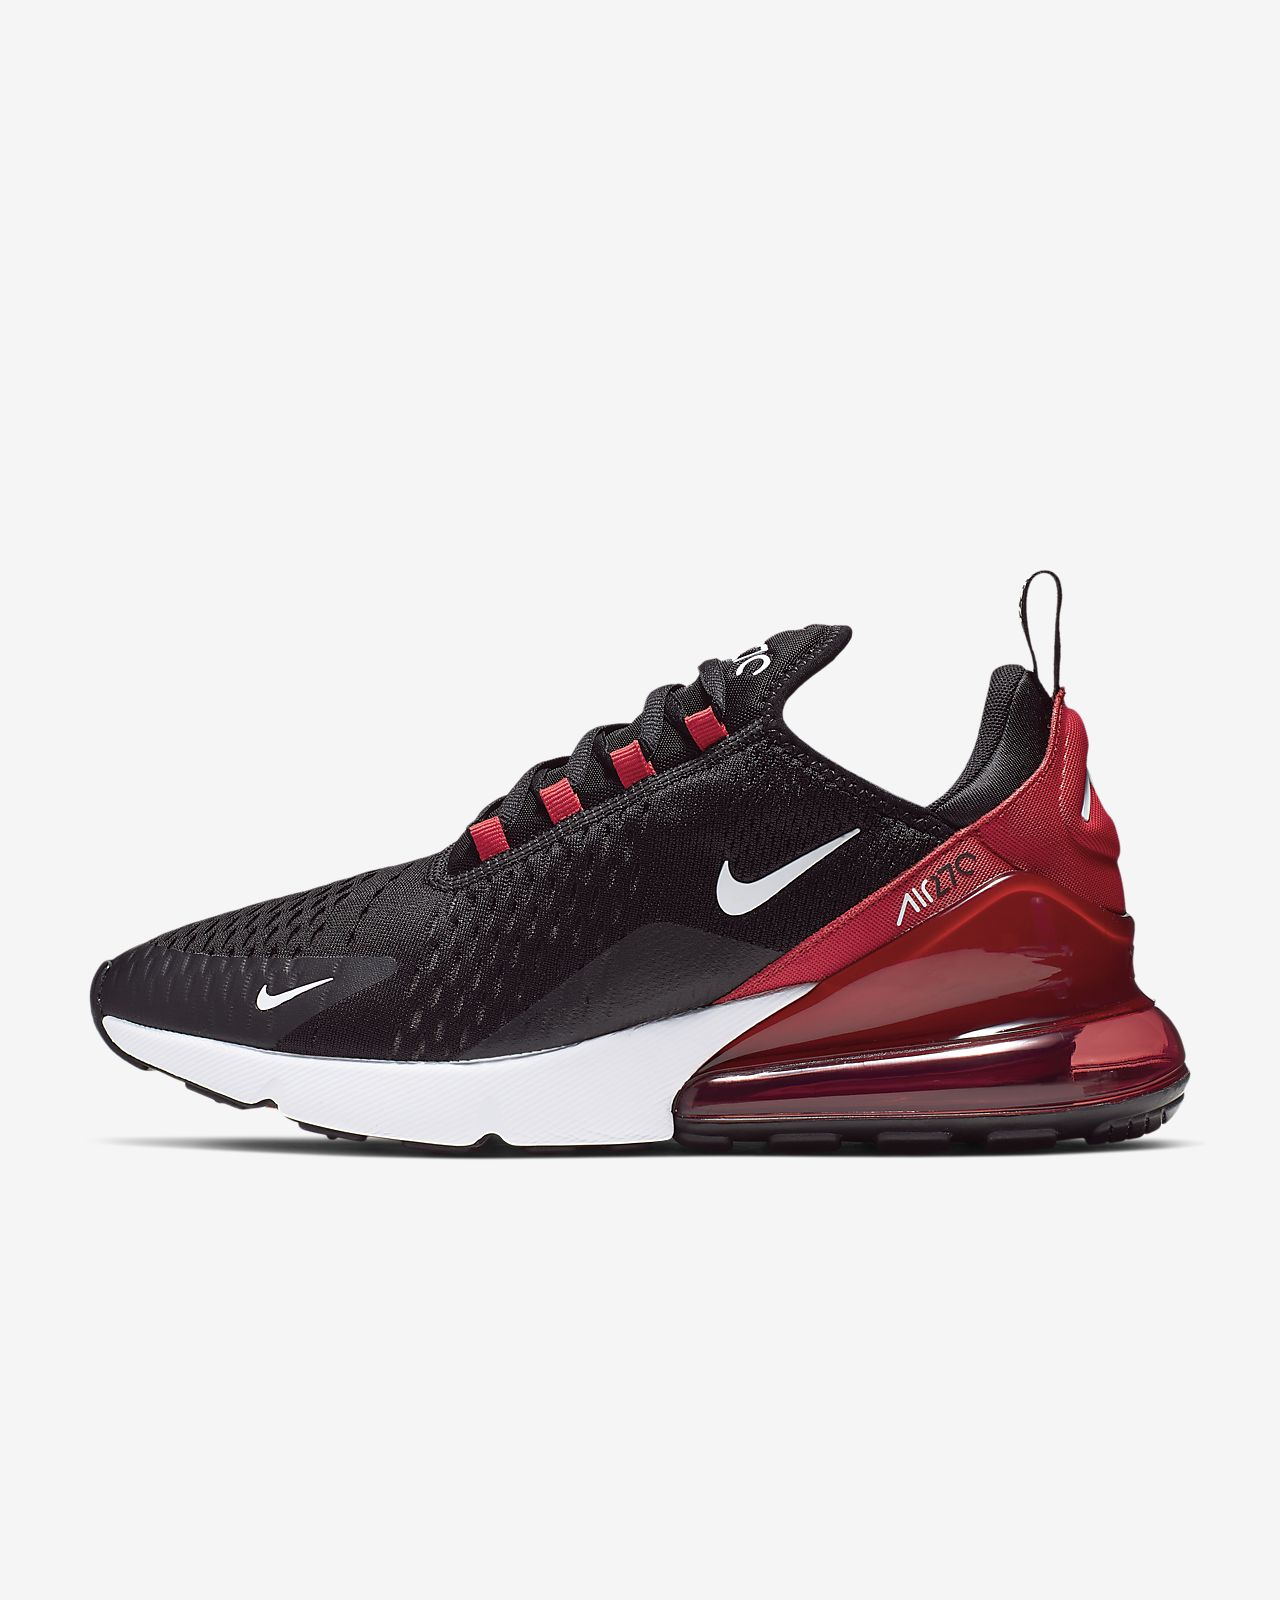 d71190a10a Nike Air Max 270 Men s Shoe. Nike.com GB